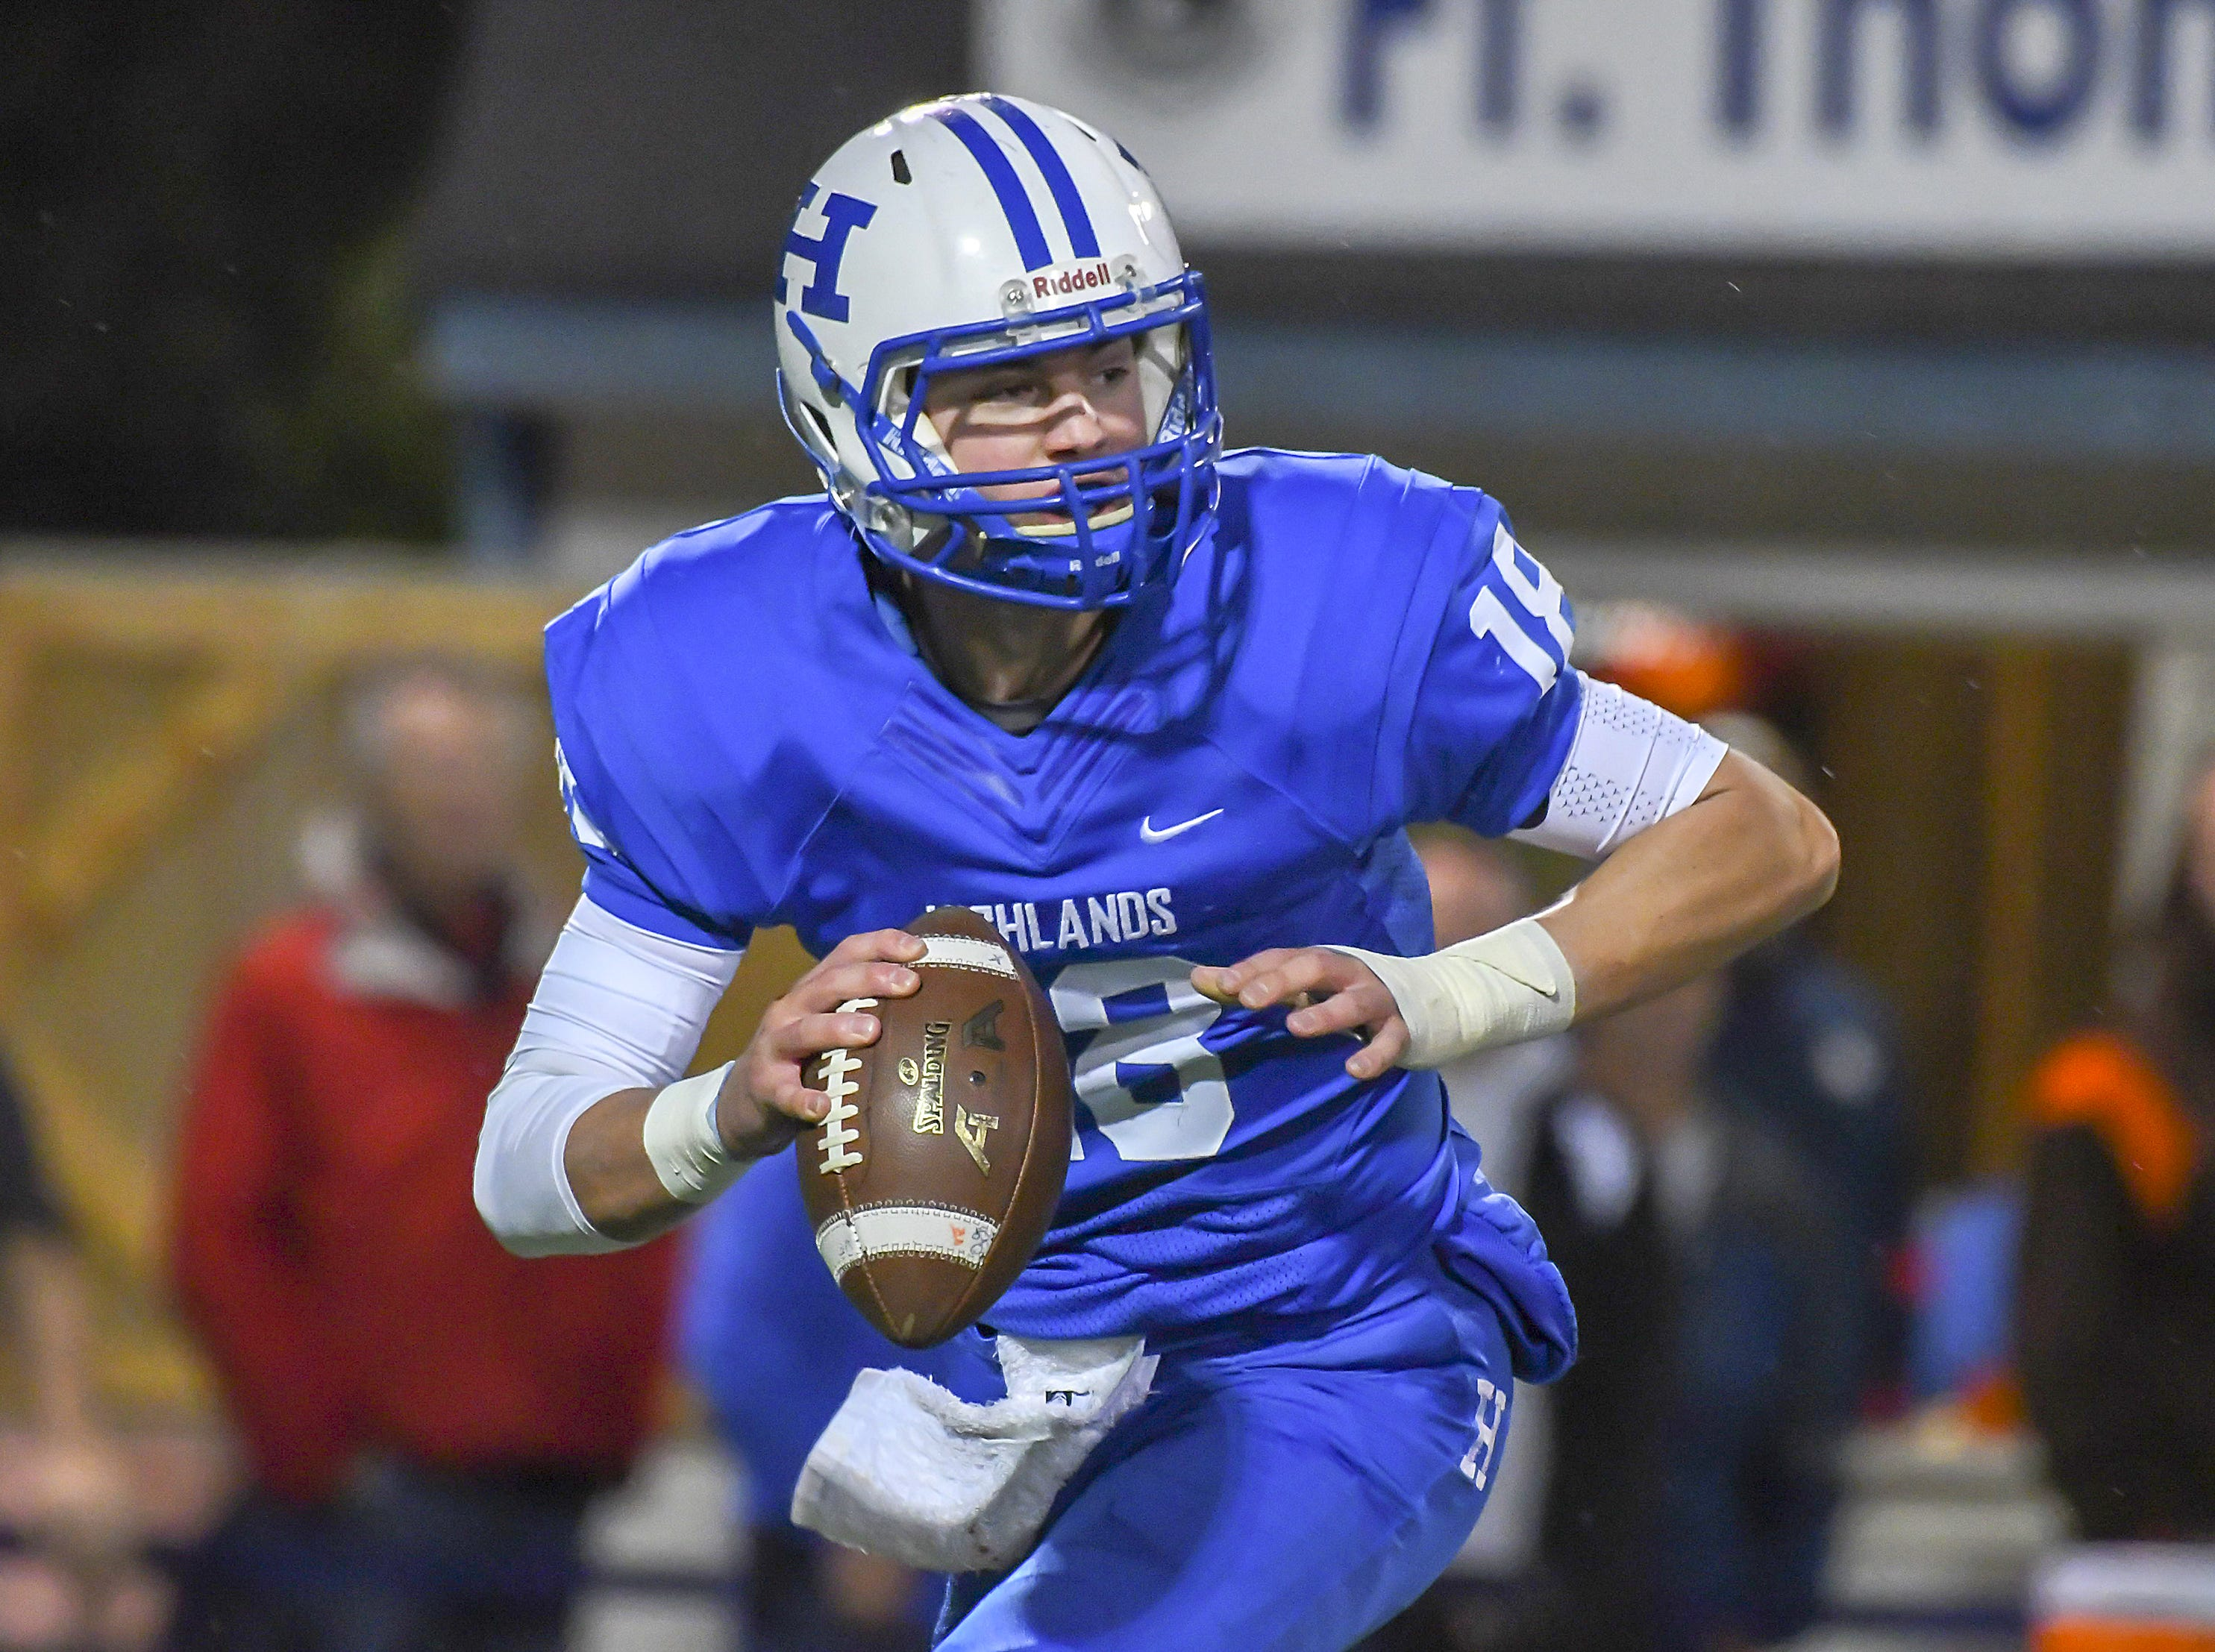 Bluebirds quarterback Grady Cramer runs out of the pocket against Covington Catholic, Highlands High School, Ft. Thomas, KY, Friday, October 12, 2018